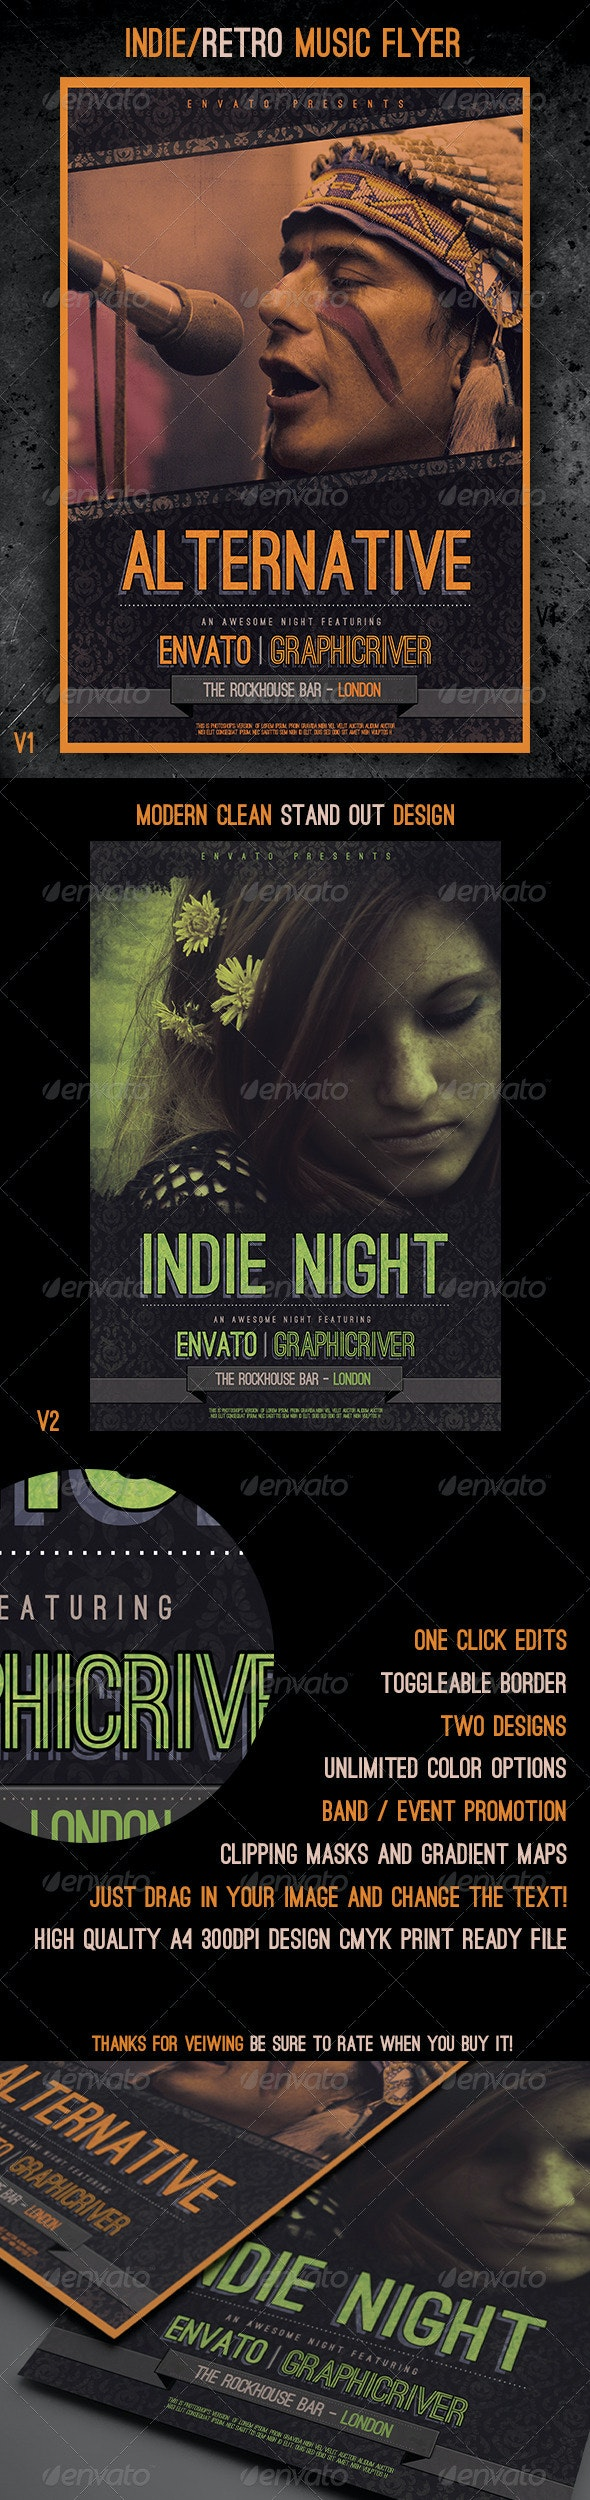 Indie / Retro Music Flyer template - Concerts Events